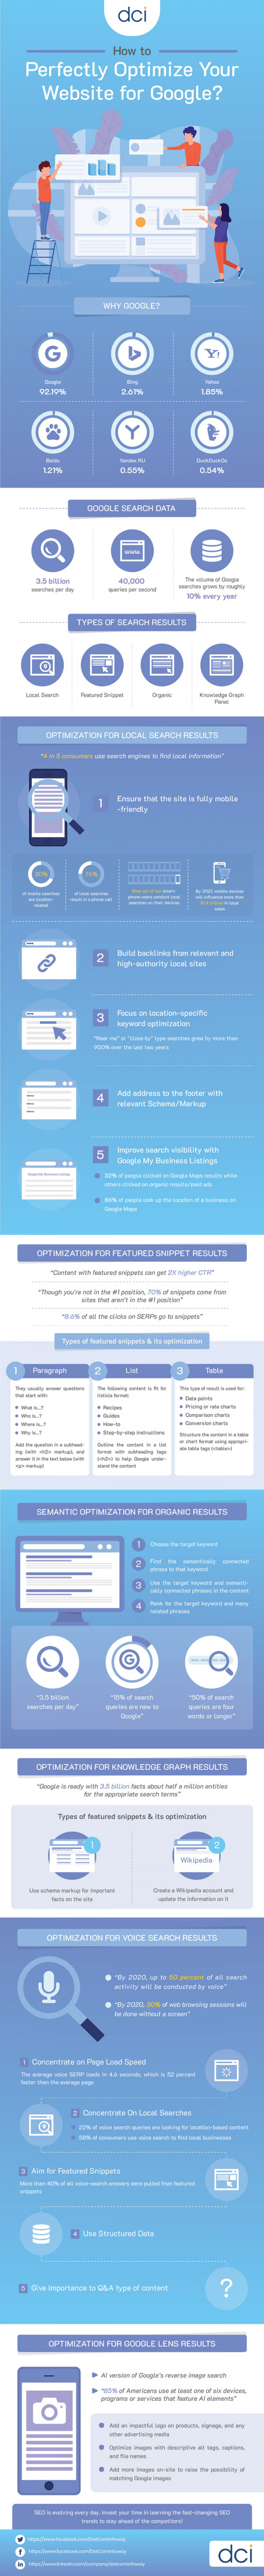 Infographic: How to Perfectly Optimize Your Website for Google? Infographic